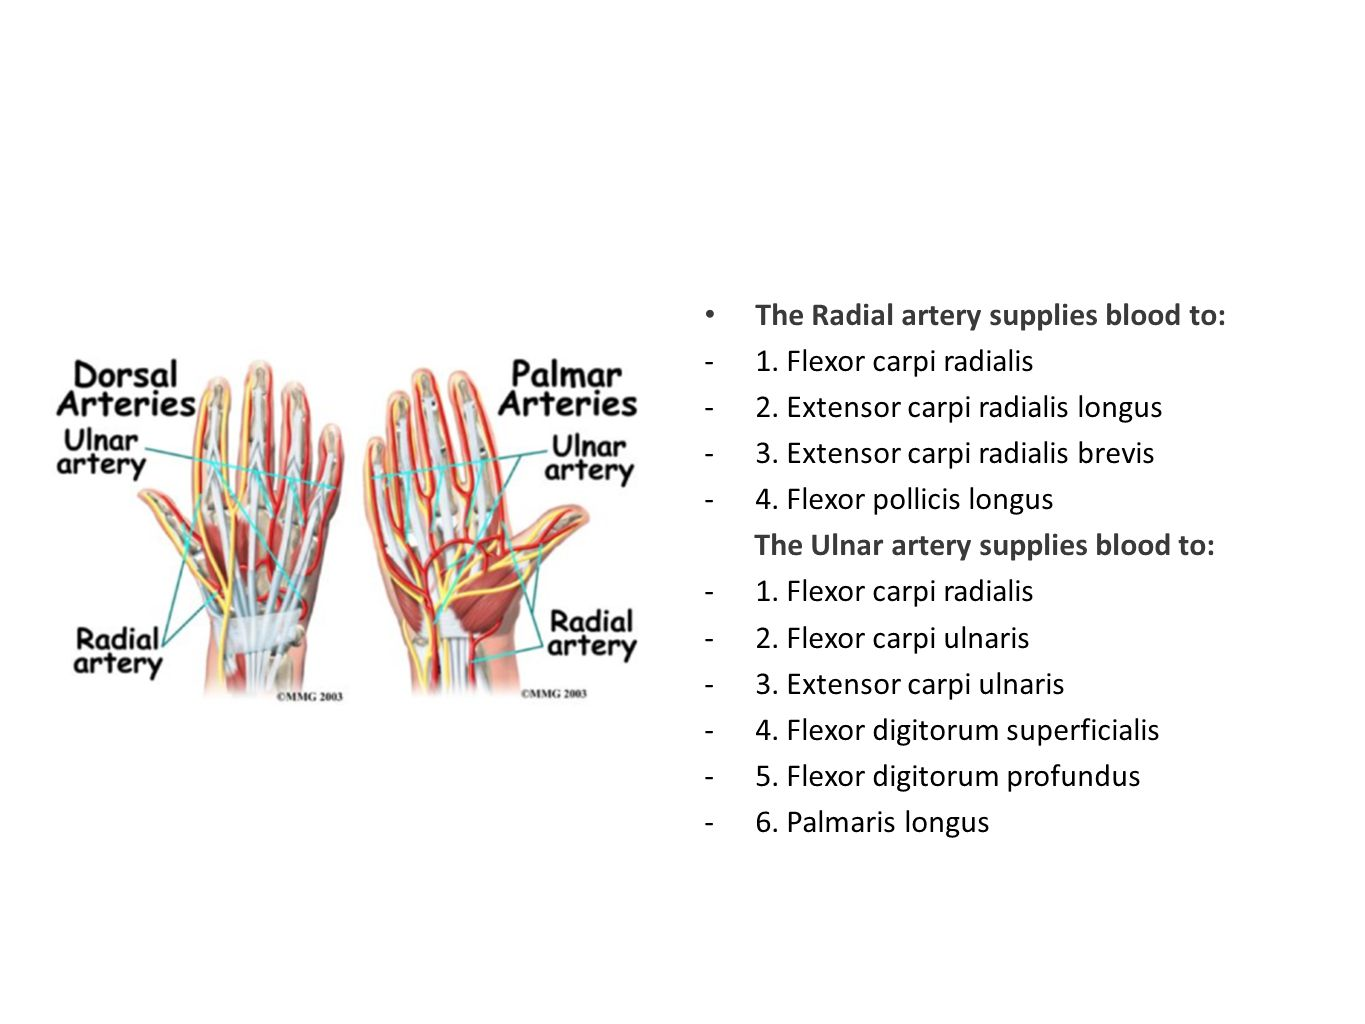 The Radial artery supplies blood to: